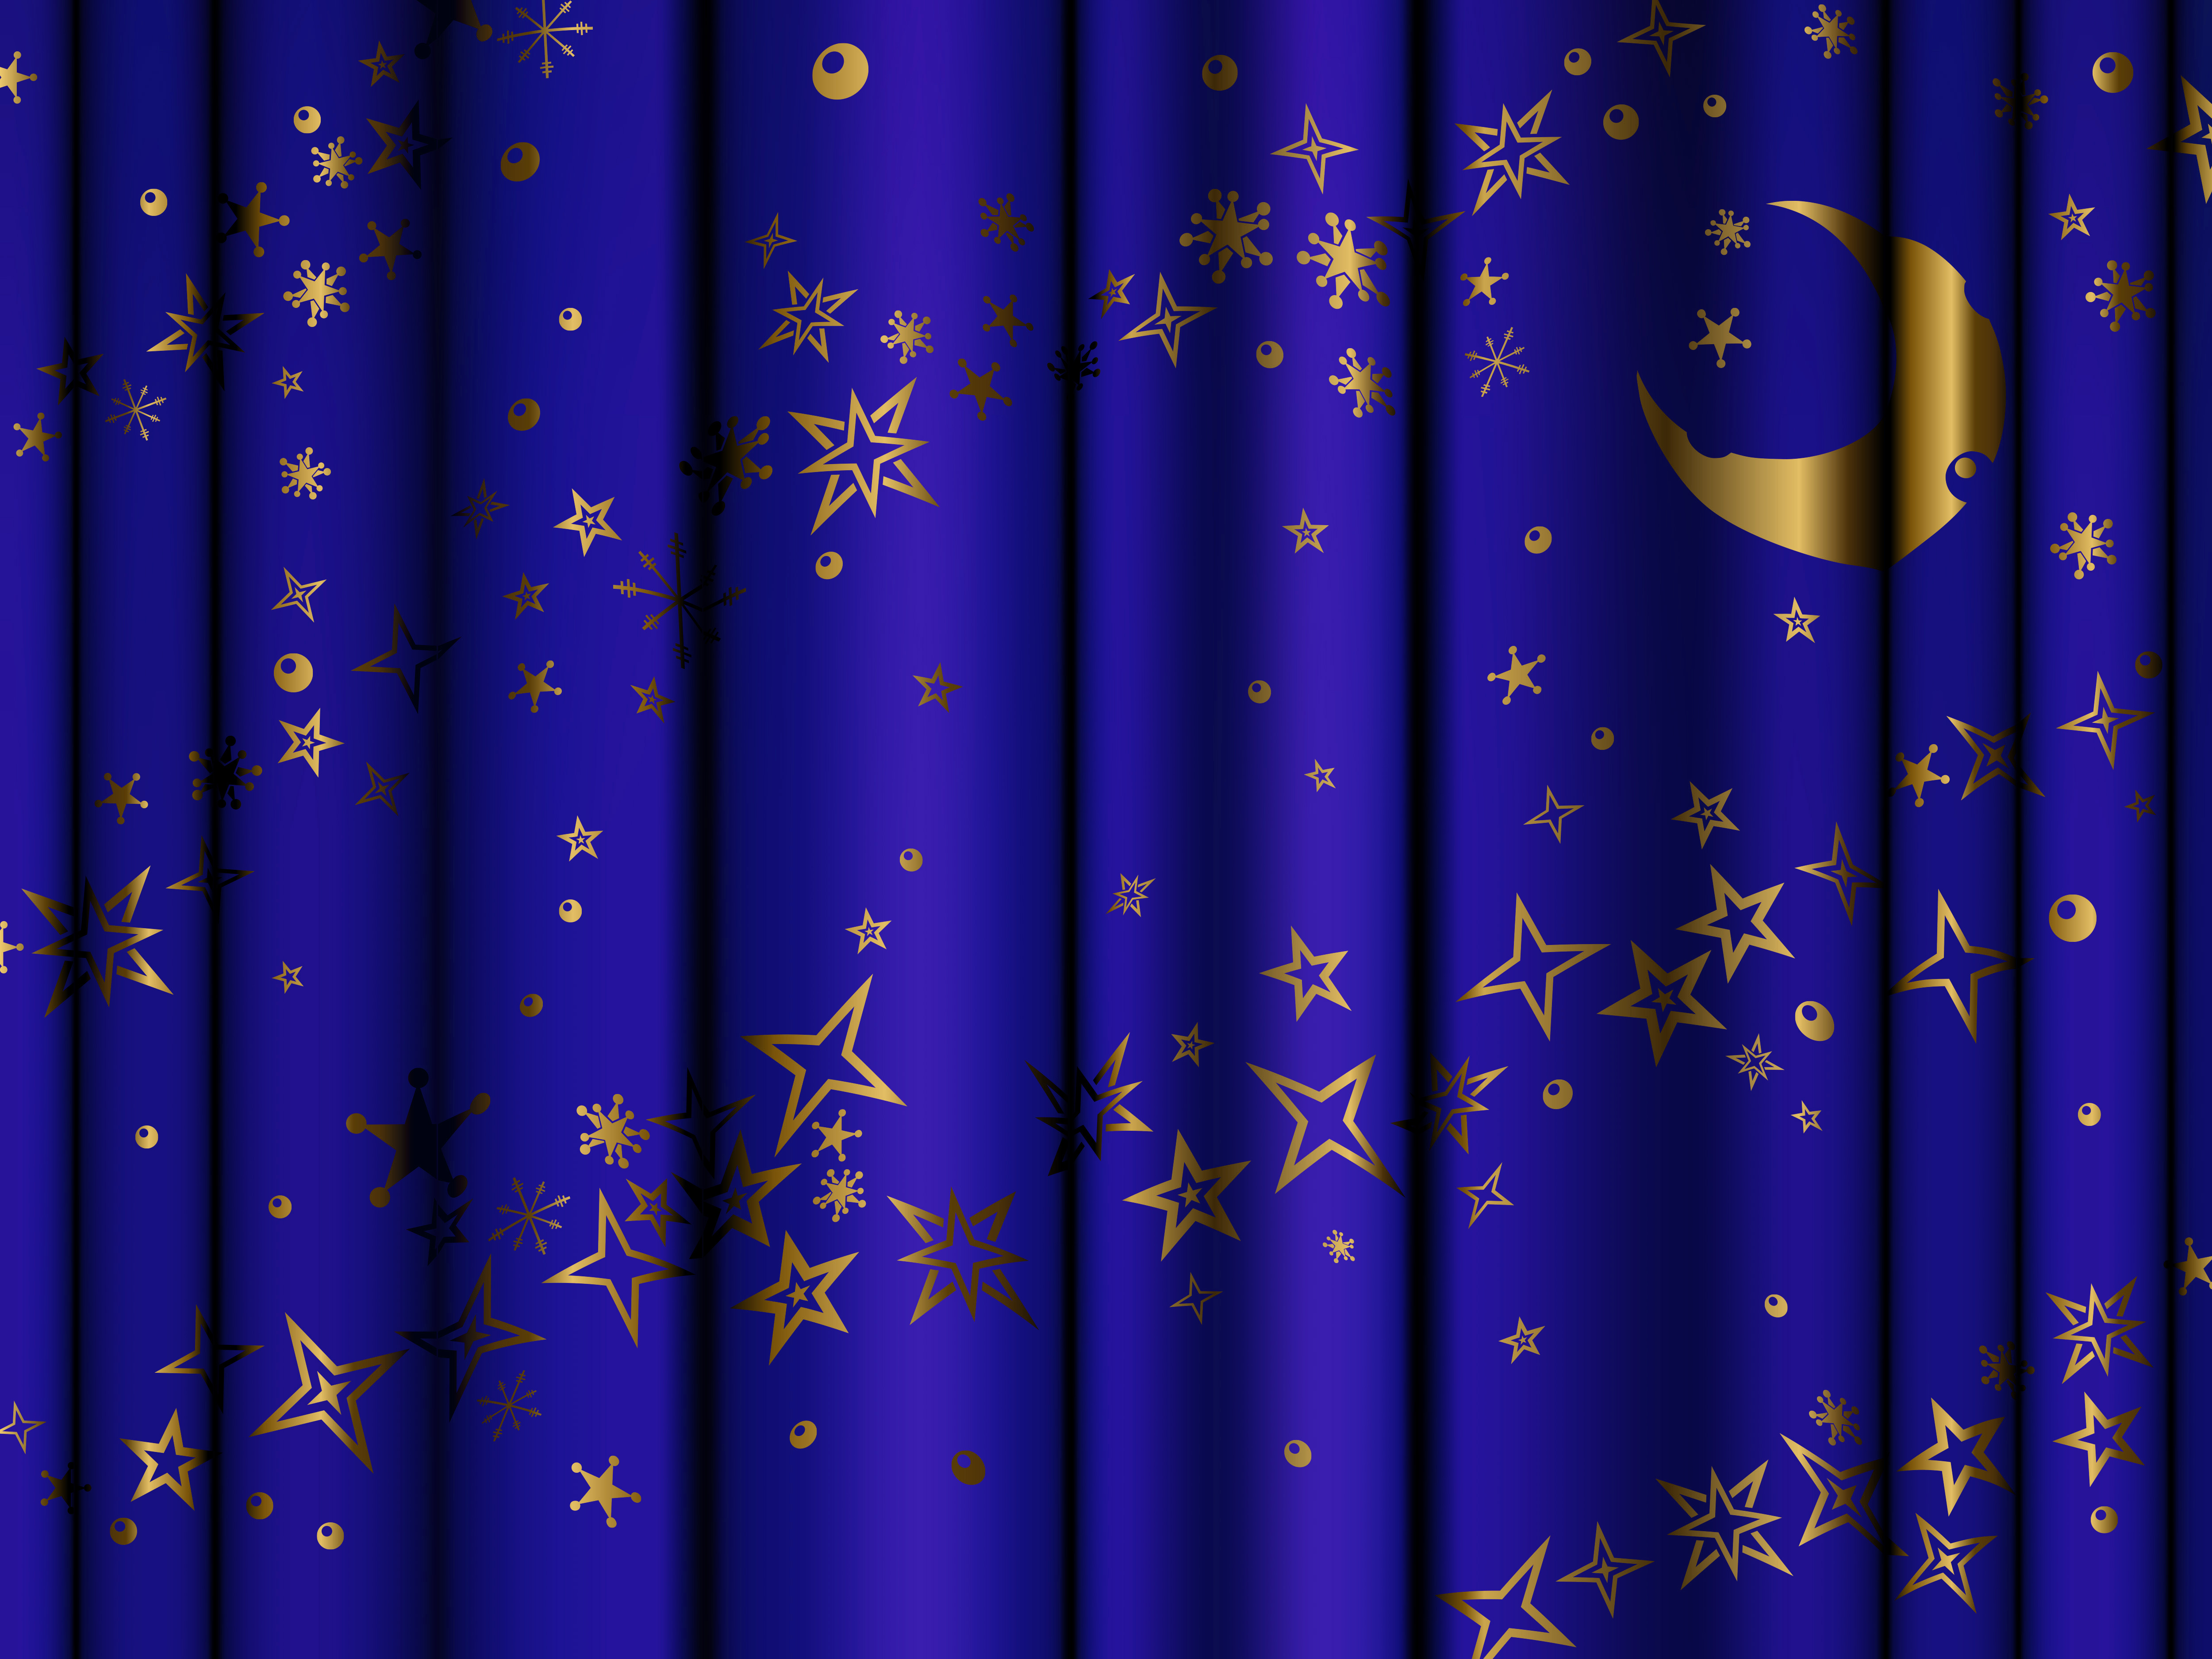 Blue Curtains with Gold Stars and Moon Background Gallery 5000x3750